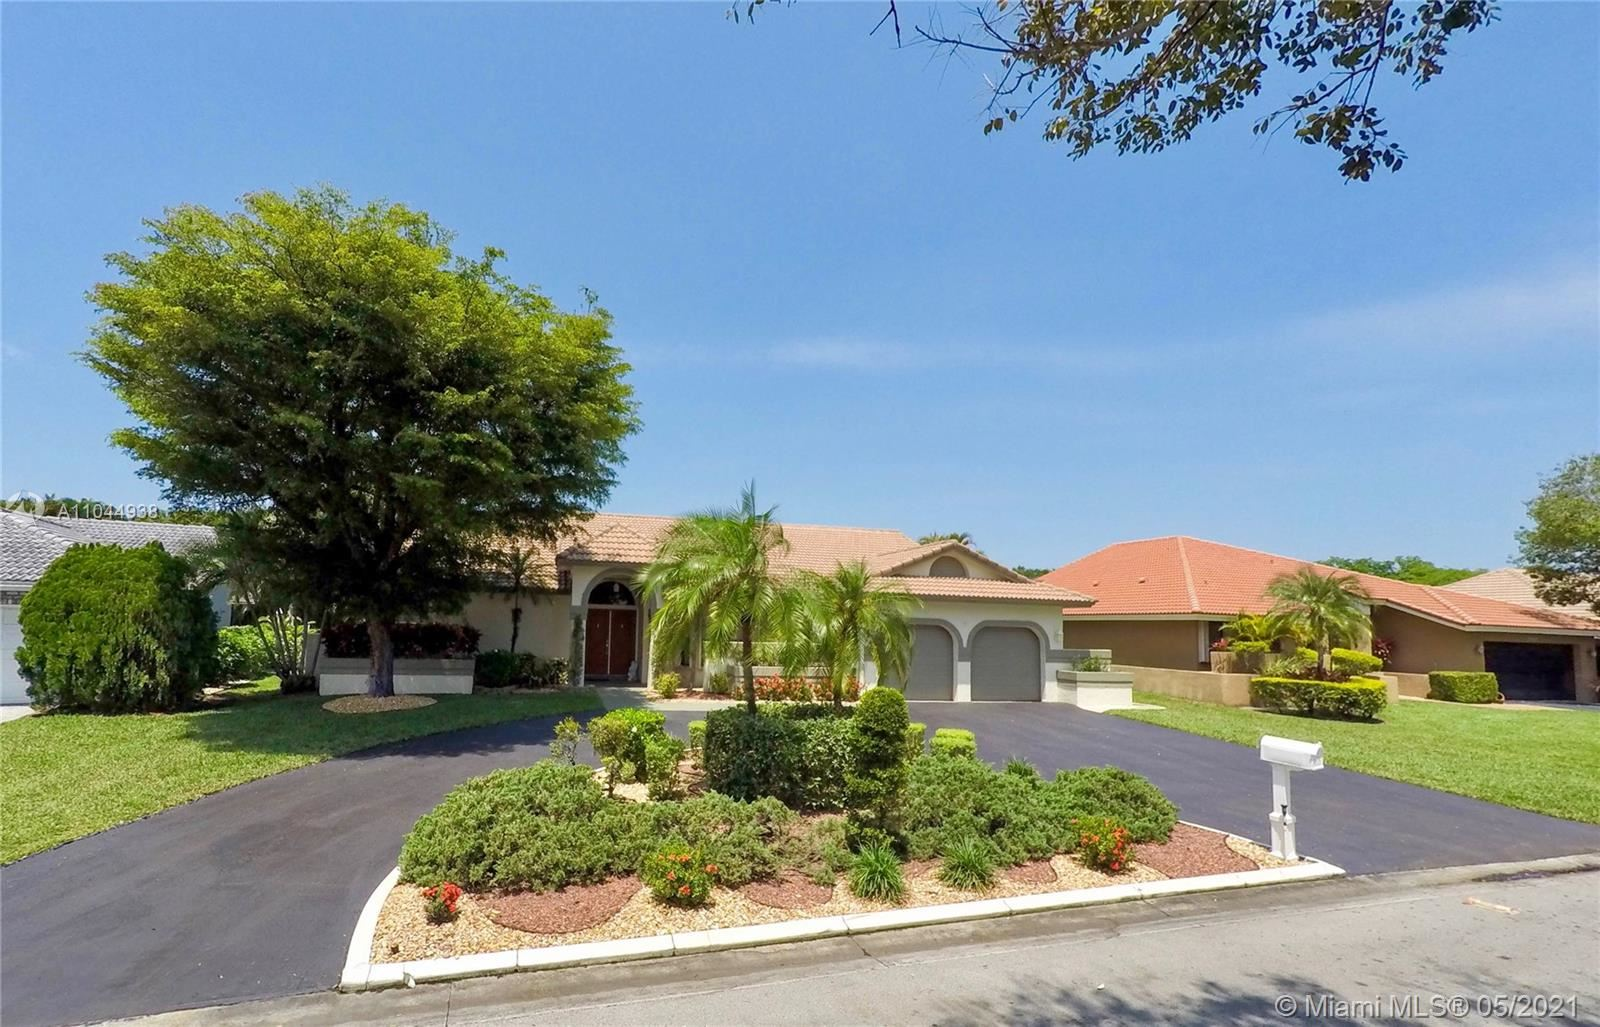 4766 NW 91st Way, Coral Springs, FL 33067 - #: A11044938